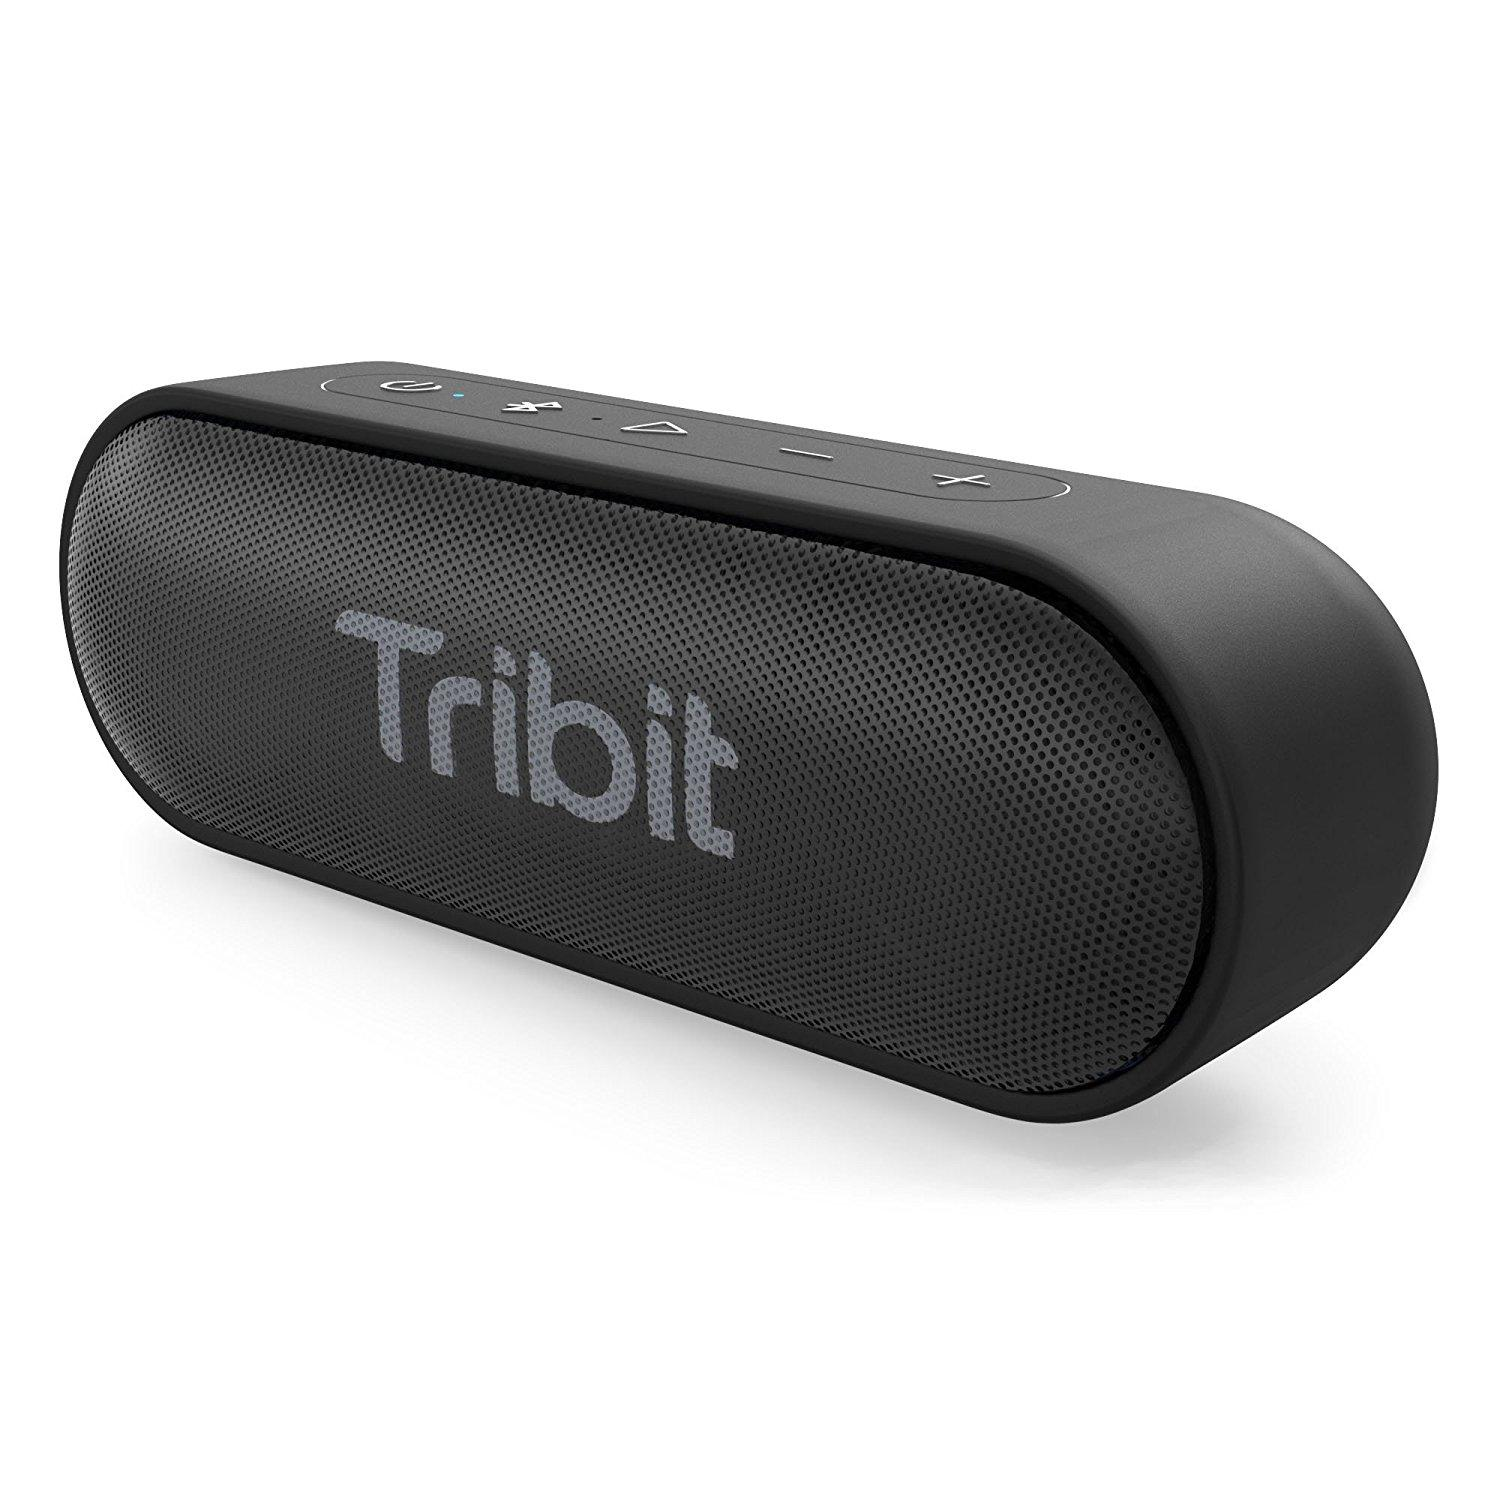 For Sale Tribit Xsound Go Portable Bluetooth Speaker 2×6W Wireless Speaker With Rich Bass Ipx7 Waterproof 24 Hour Playtime 66 Ft Bluetooth Range Built In Mic For Party Travel The Wirecutter S Pick